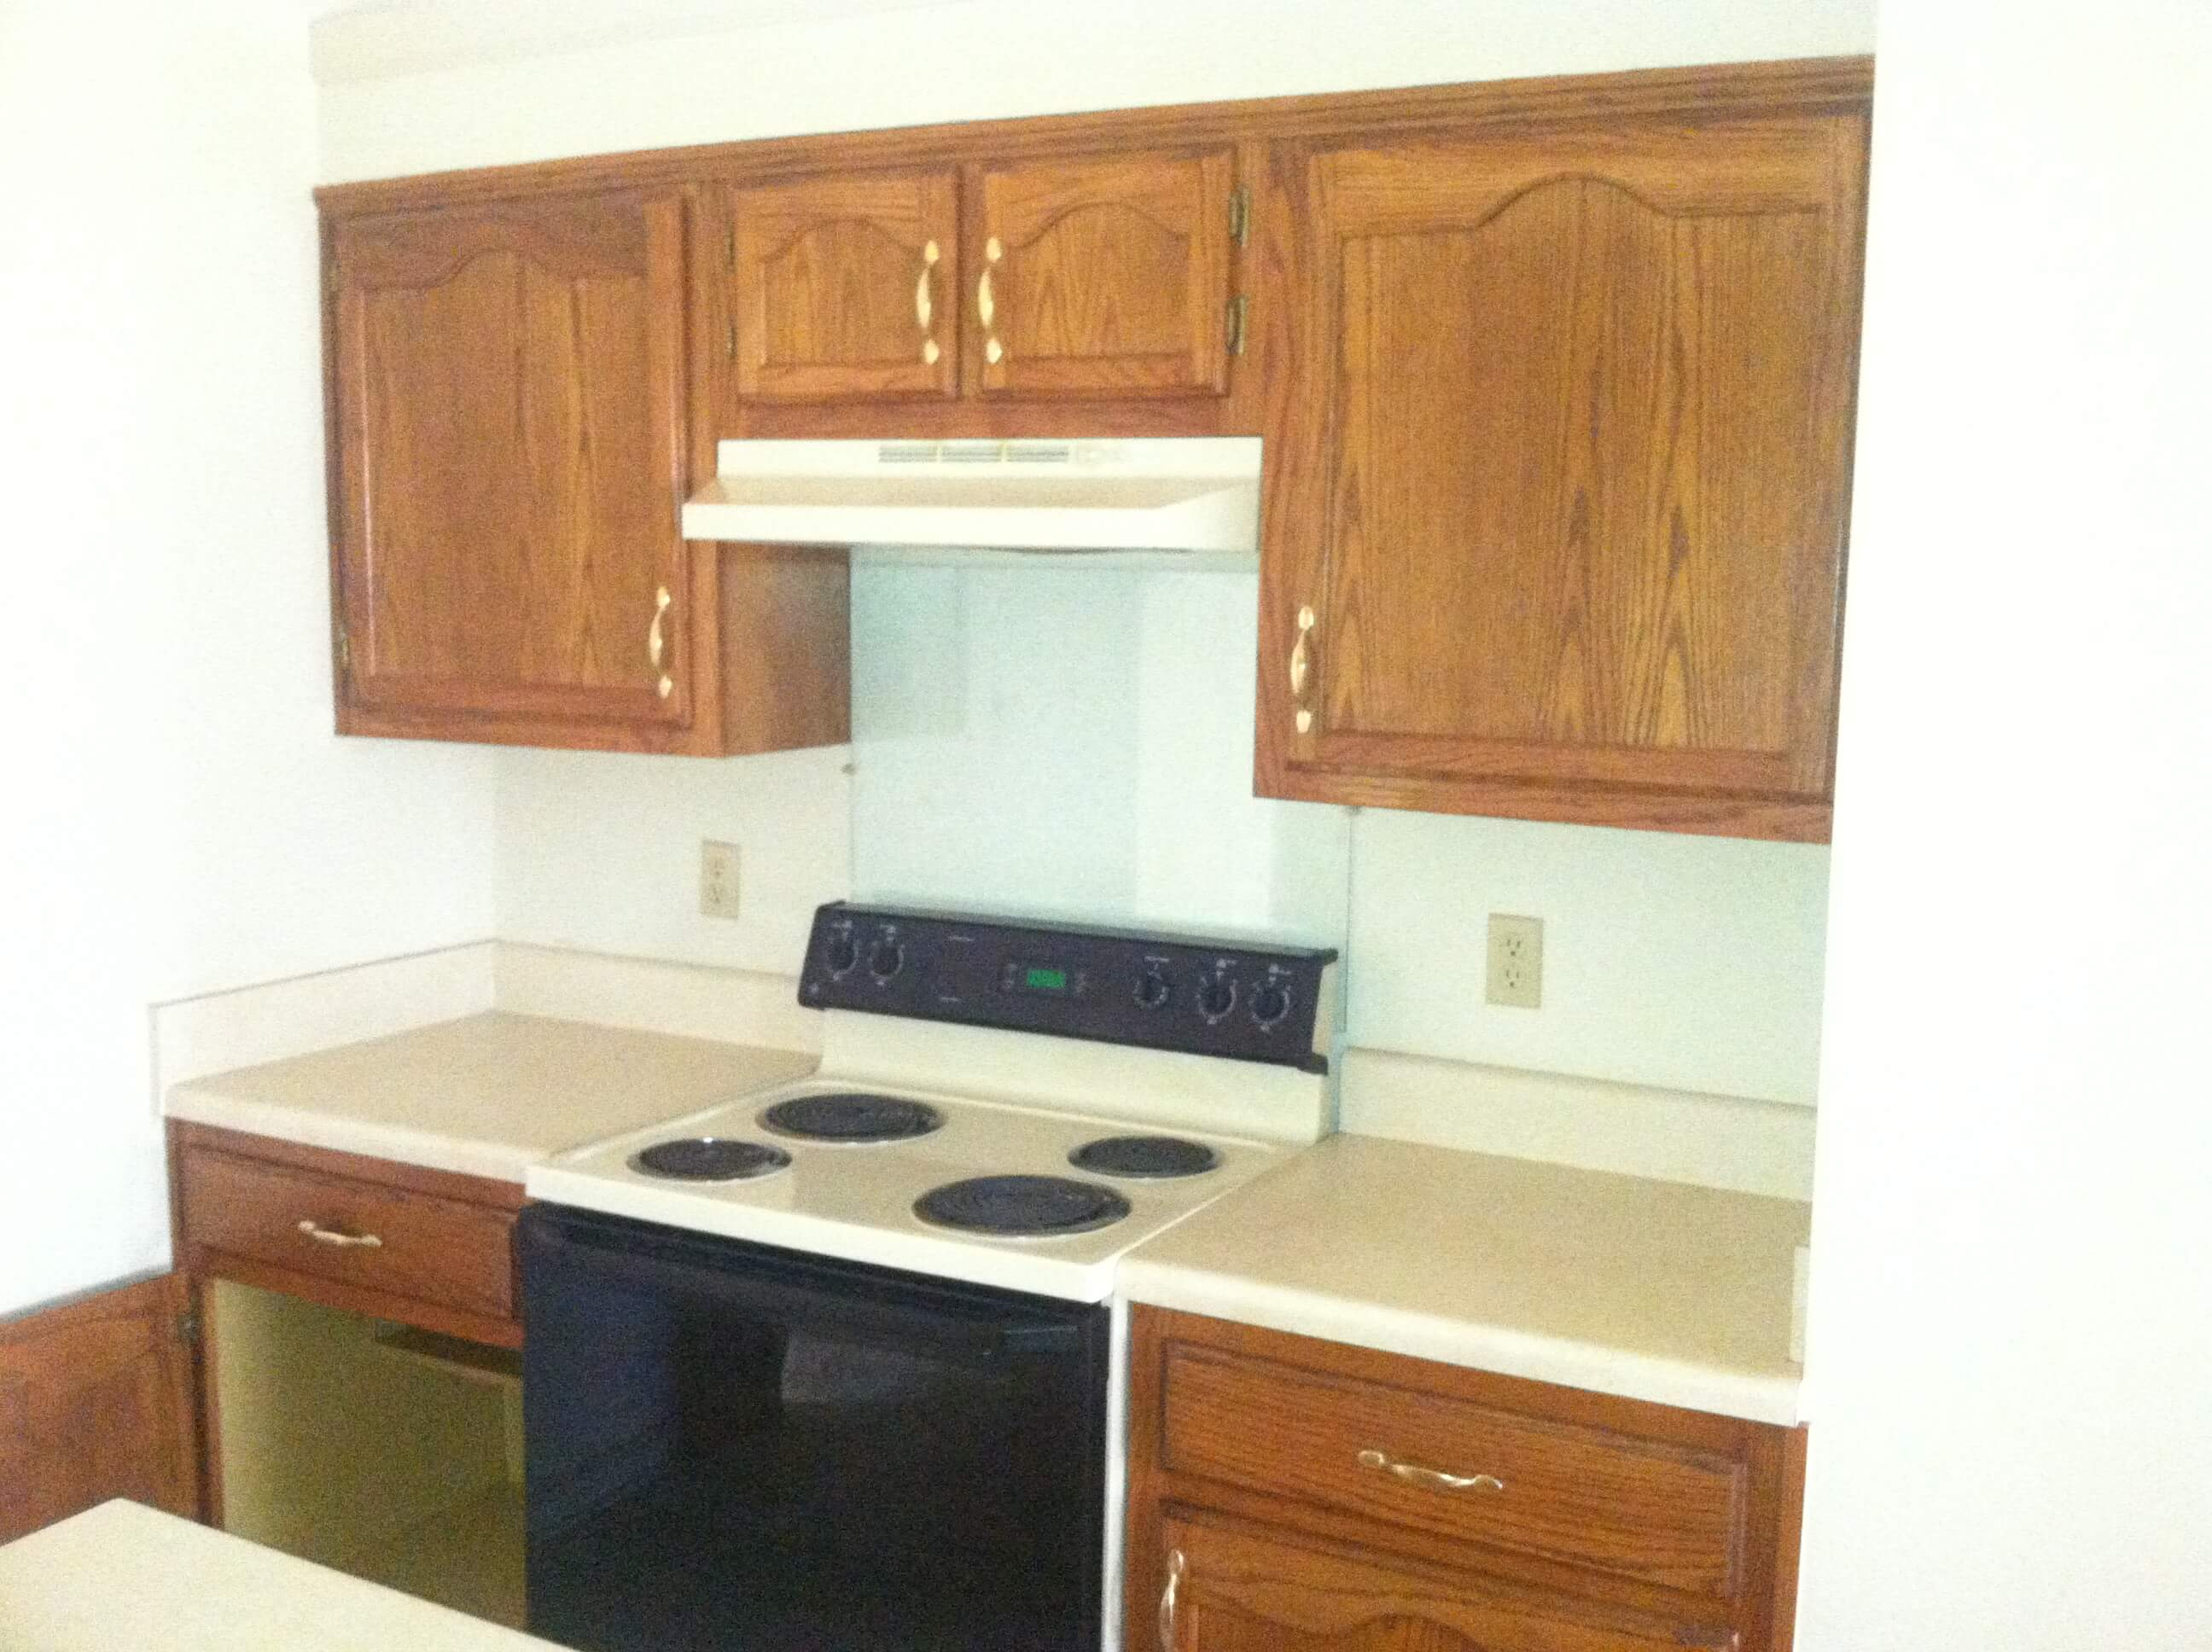 To Remodel A Kitchen How To Remodel A 20 Year Old Kitchen For Less Than 3000